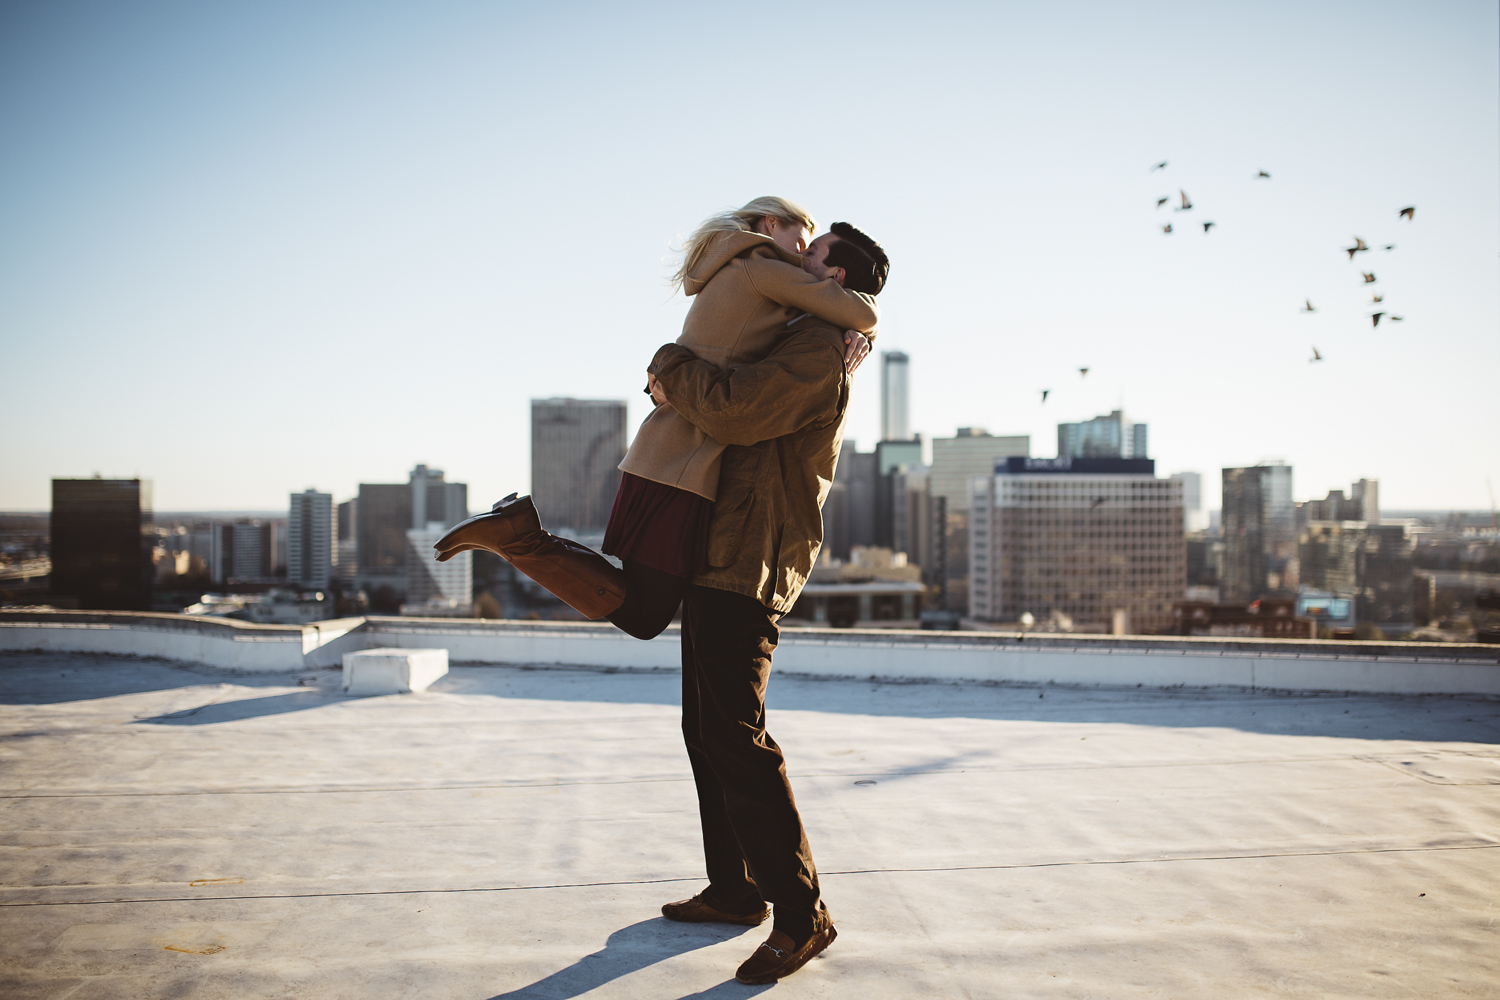 KDP_claire&drew - the proposal-292.jpg